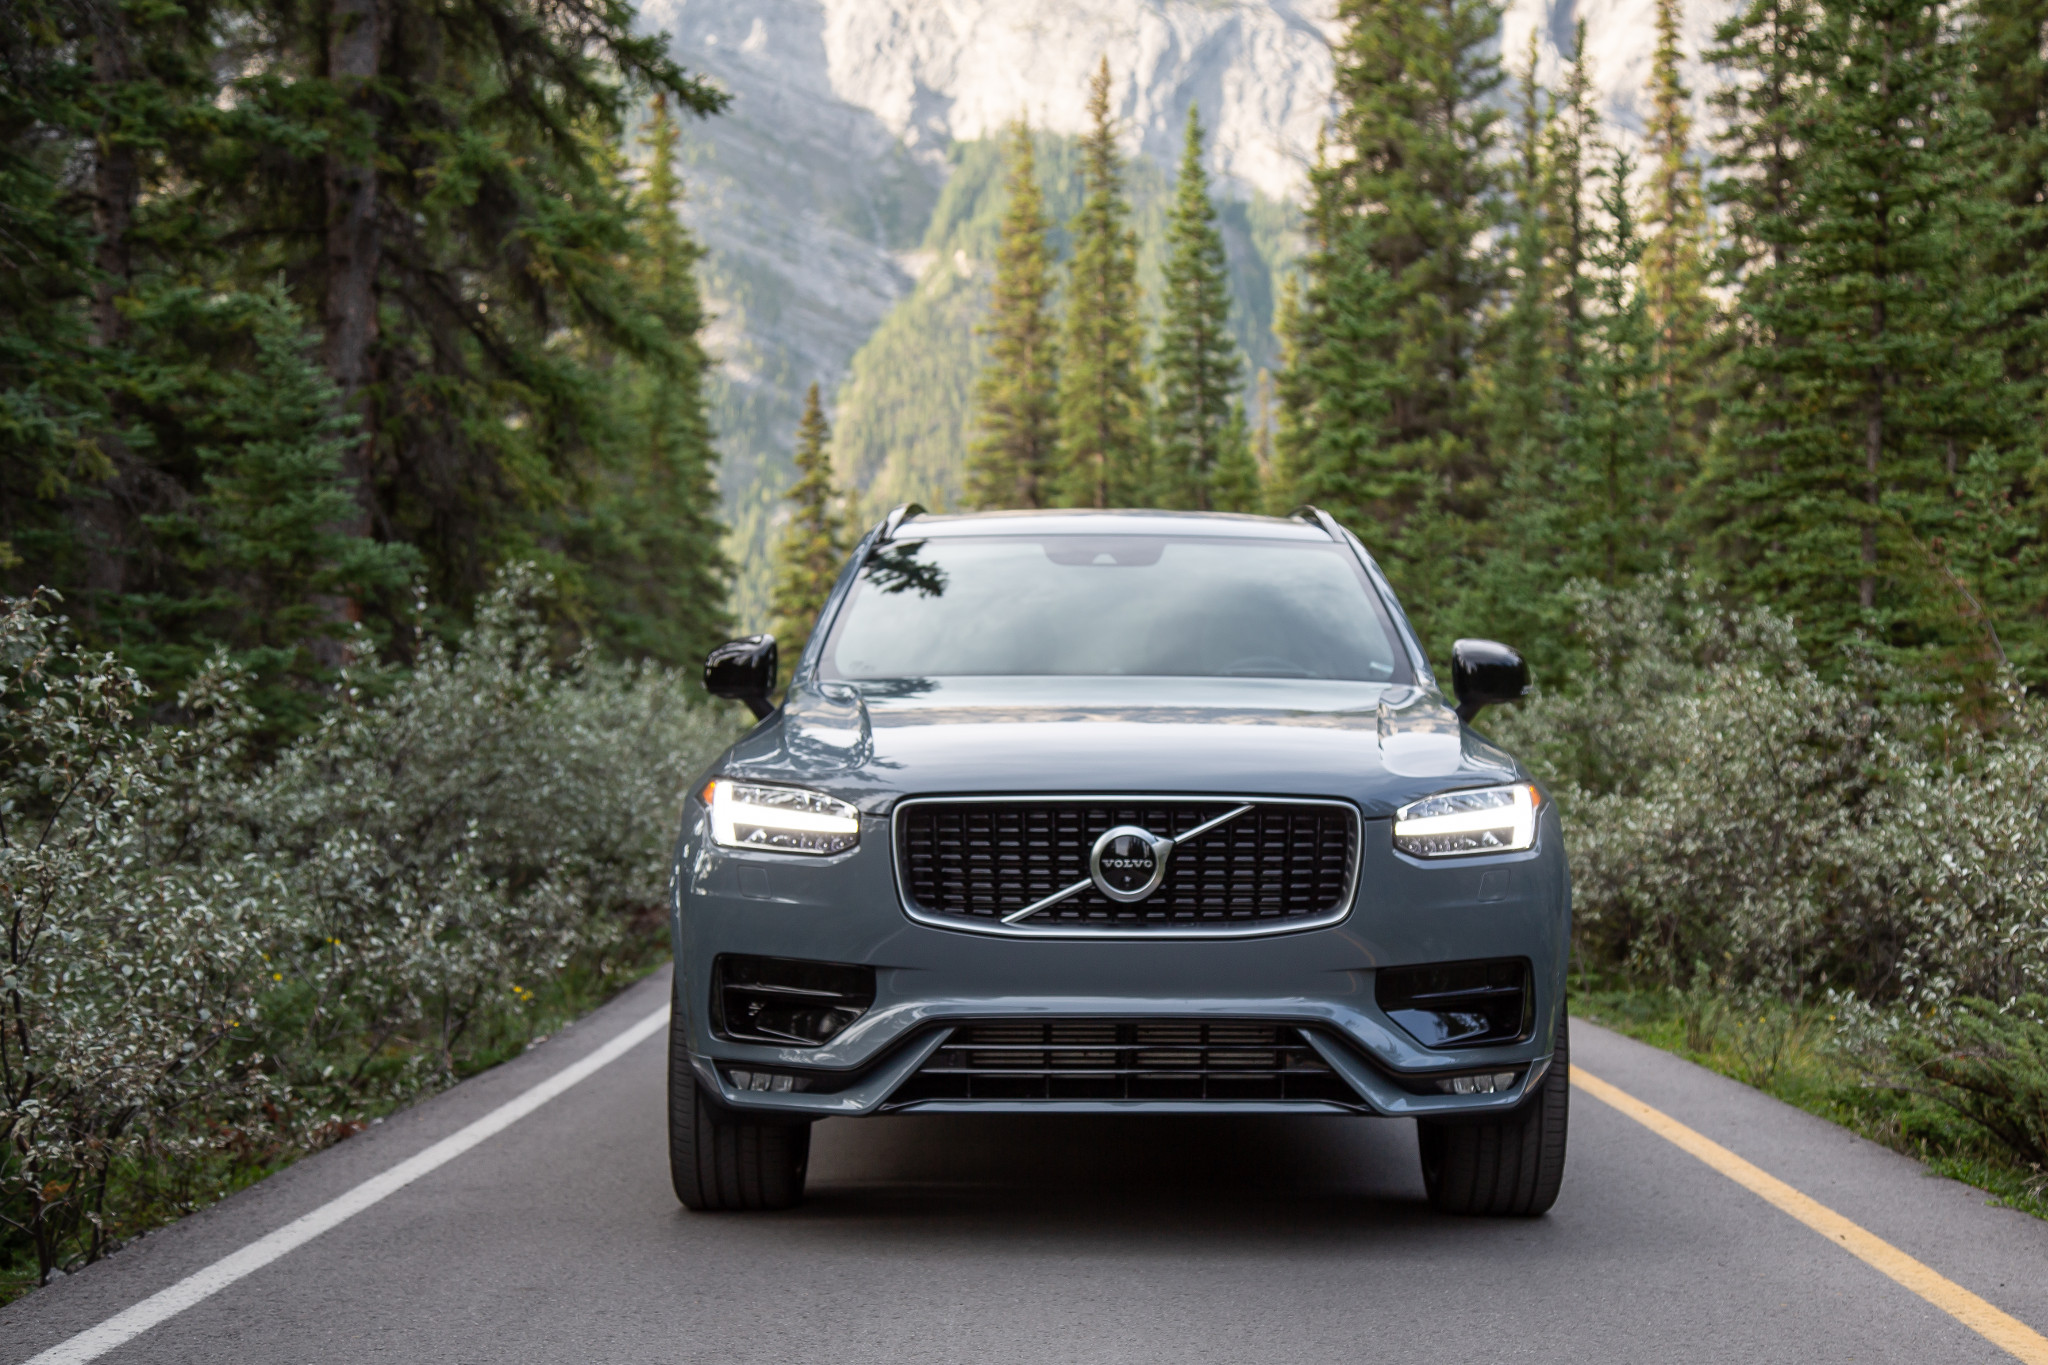 volvo-xc90-t6-r-design-2020-02-blue--exterior--front--mountains--trees.jpg